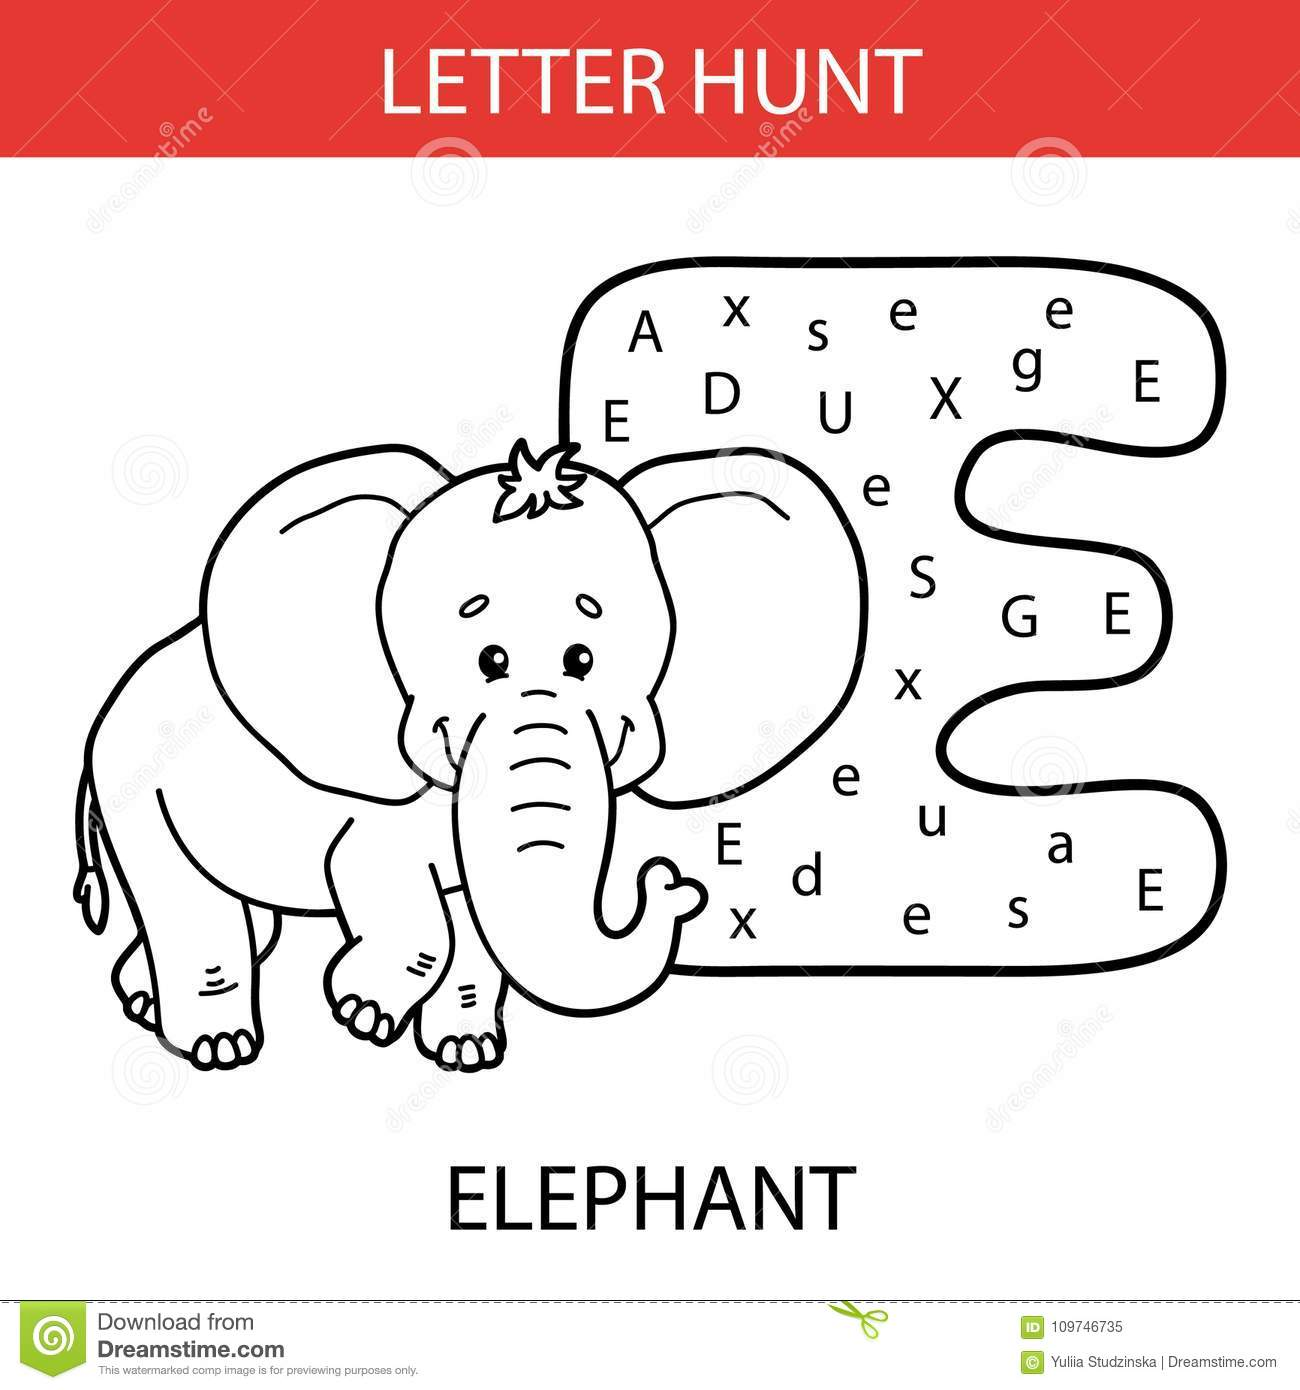 Animal Letter Hunt Elephant Stock Vector